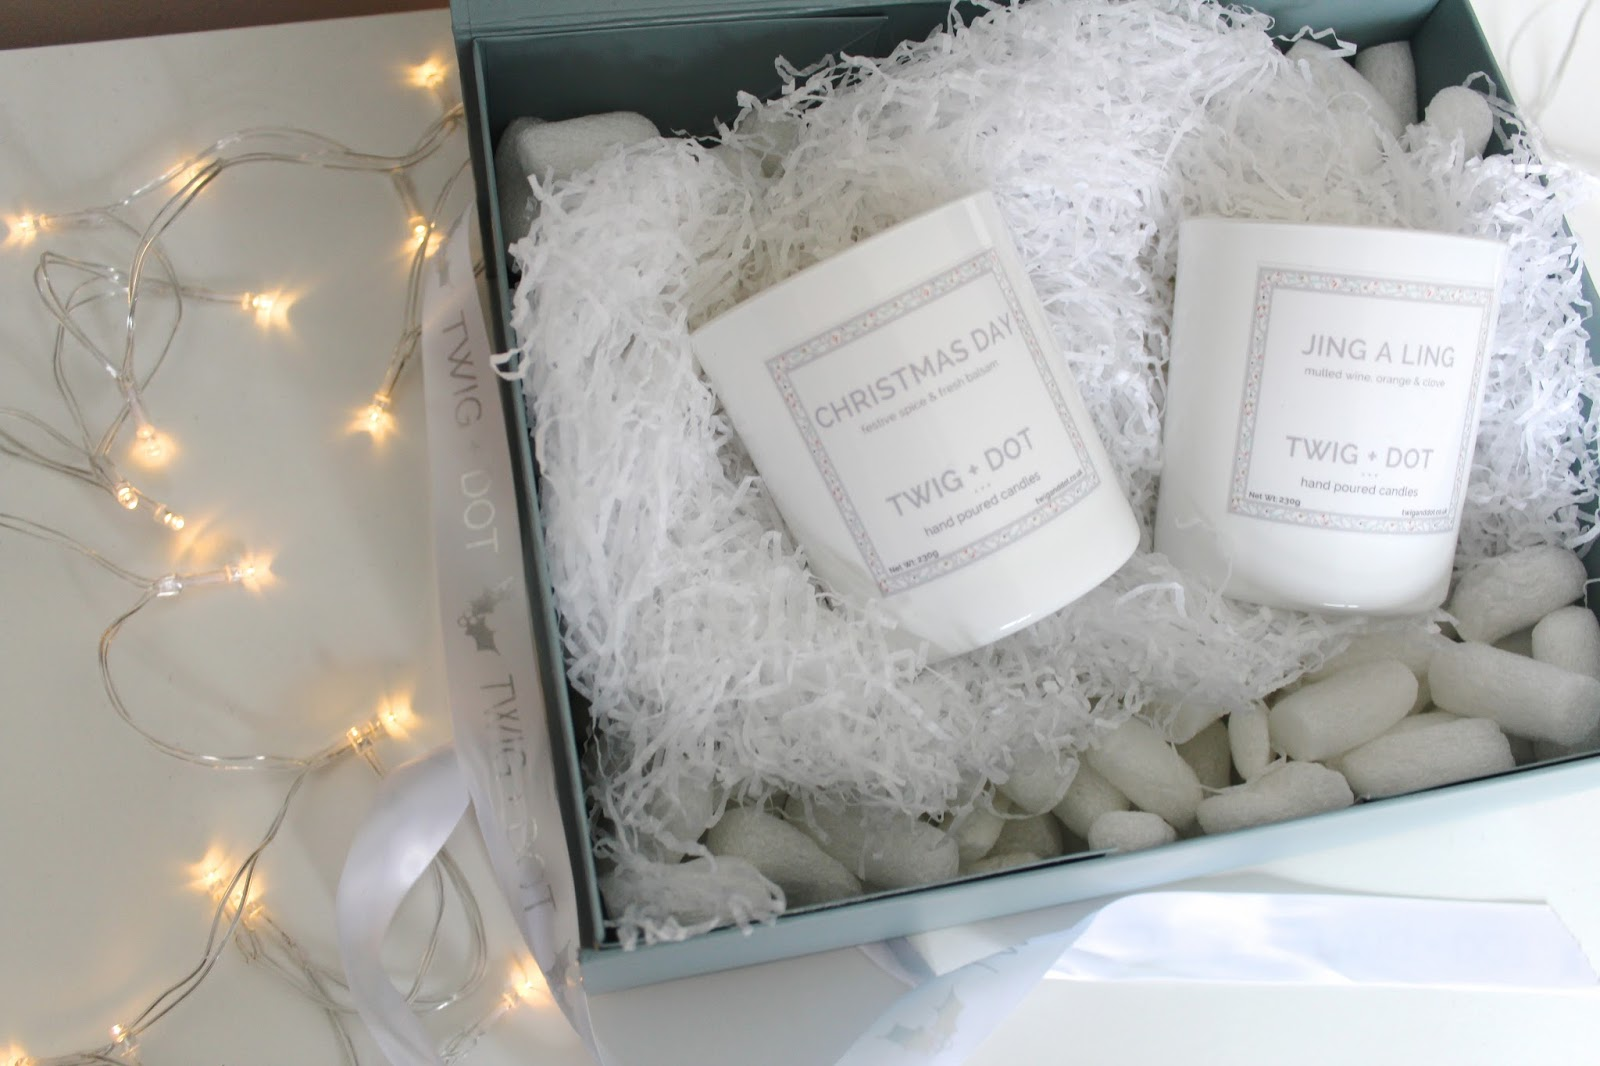 twig + dot candles the glisten set jing a ling christmas day review candle beauty blog blogger bblogger beauty lifestyle home decoration lights kirstie pickering